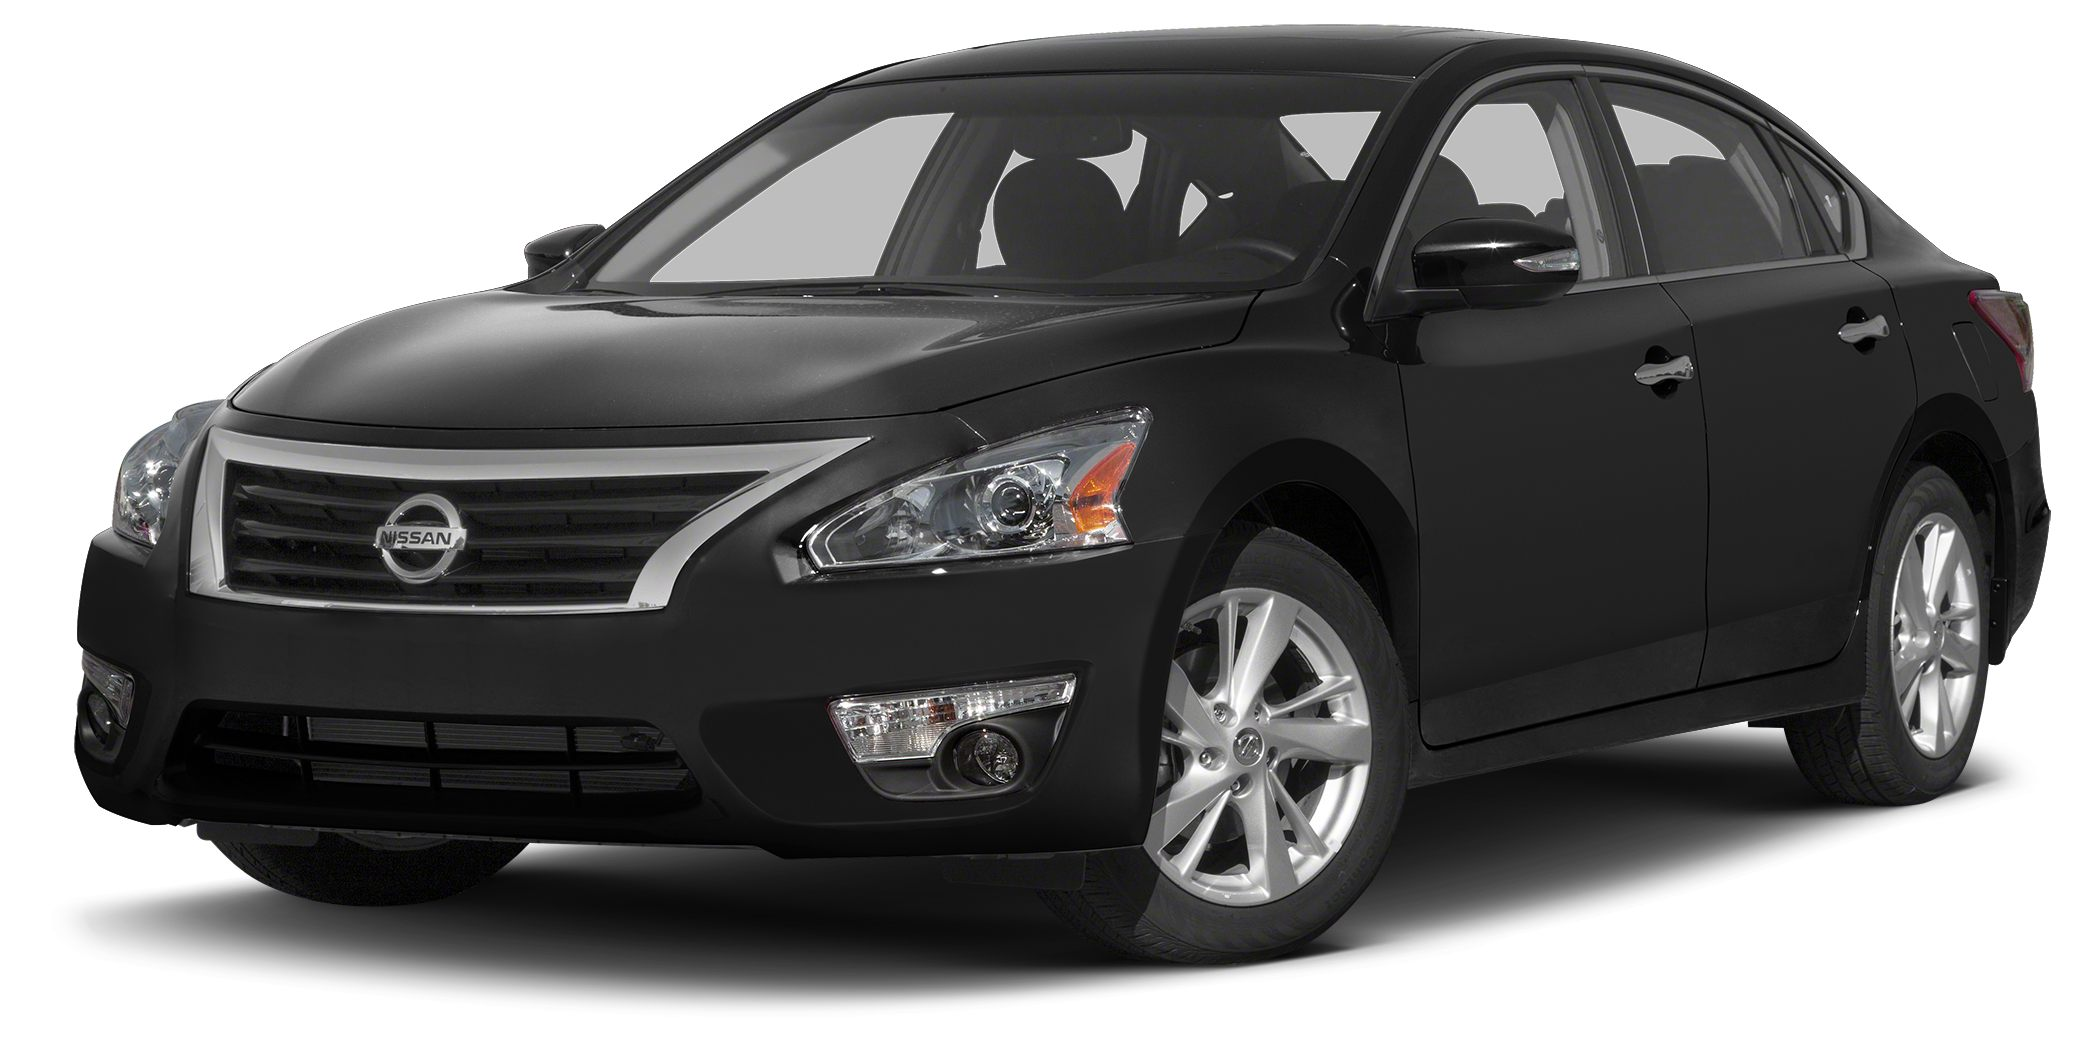 2013 Nissan Altima 25 SL Visit Best Auto Group online at bronxbestautocom to see more pictures o